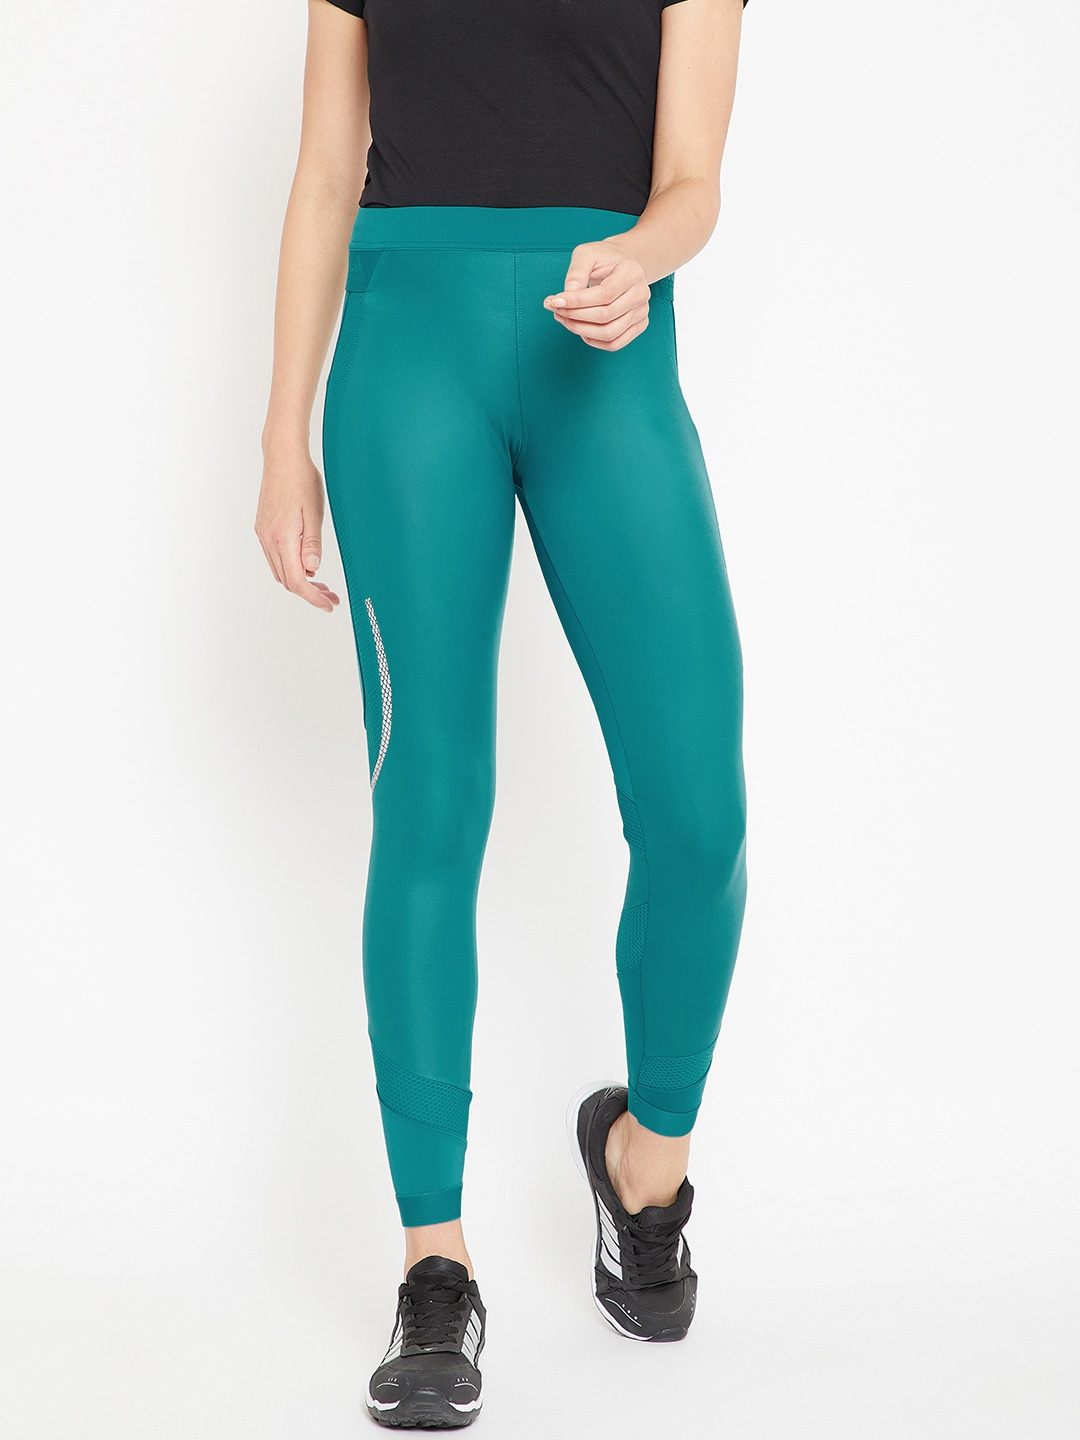 d00bb5d64b0 Adidas Tights Track Pants Trousers Caps - Buy Adidas Tights Track Pants  Trousers Caps online in India